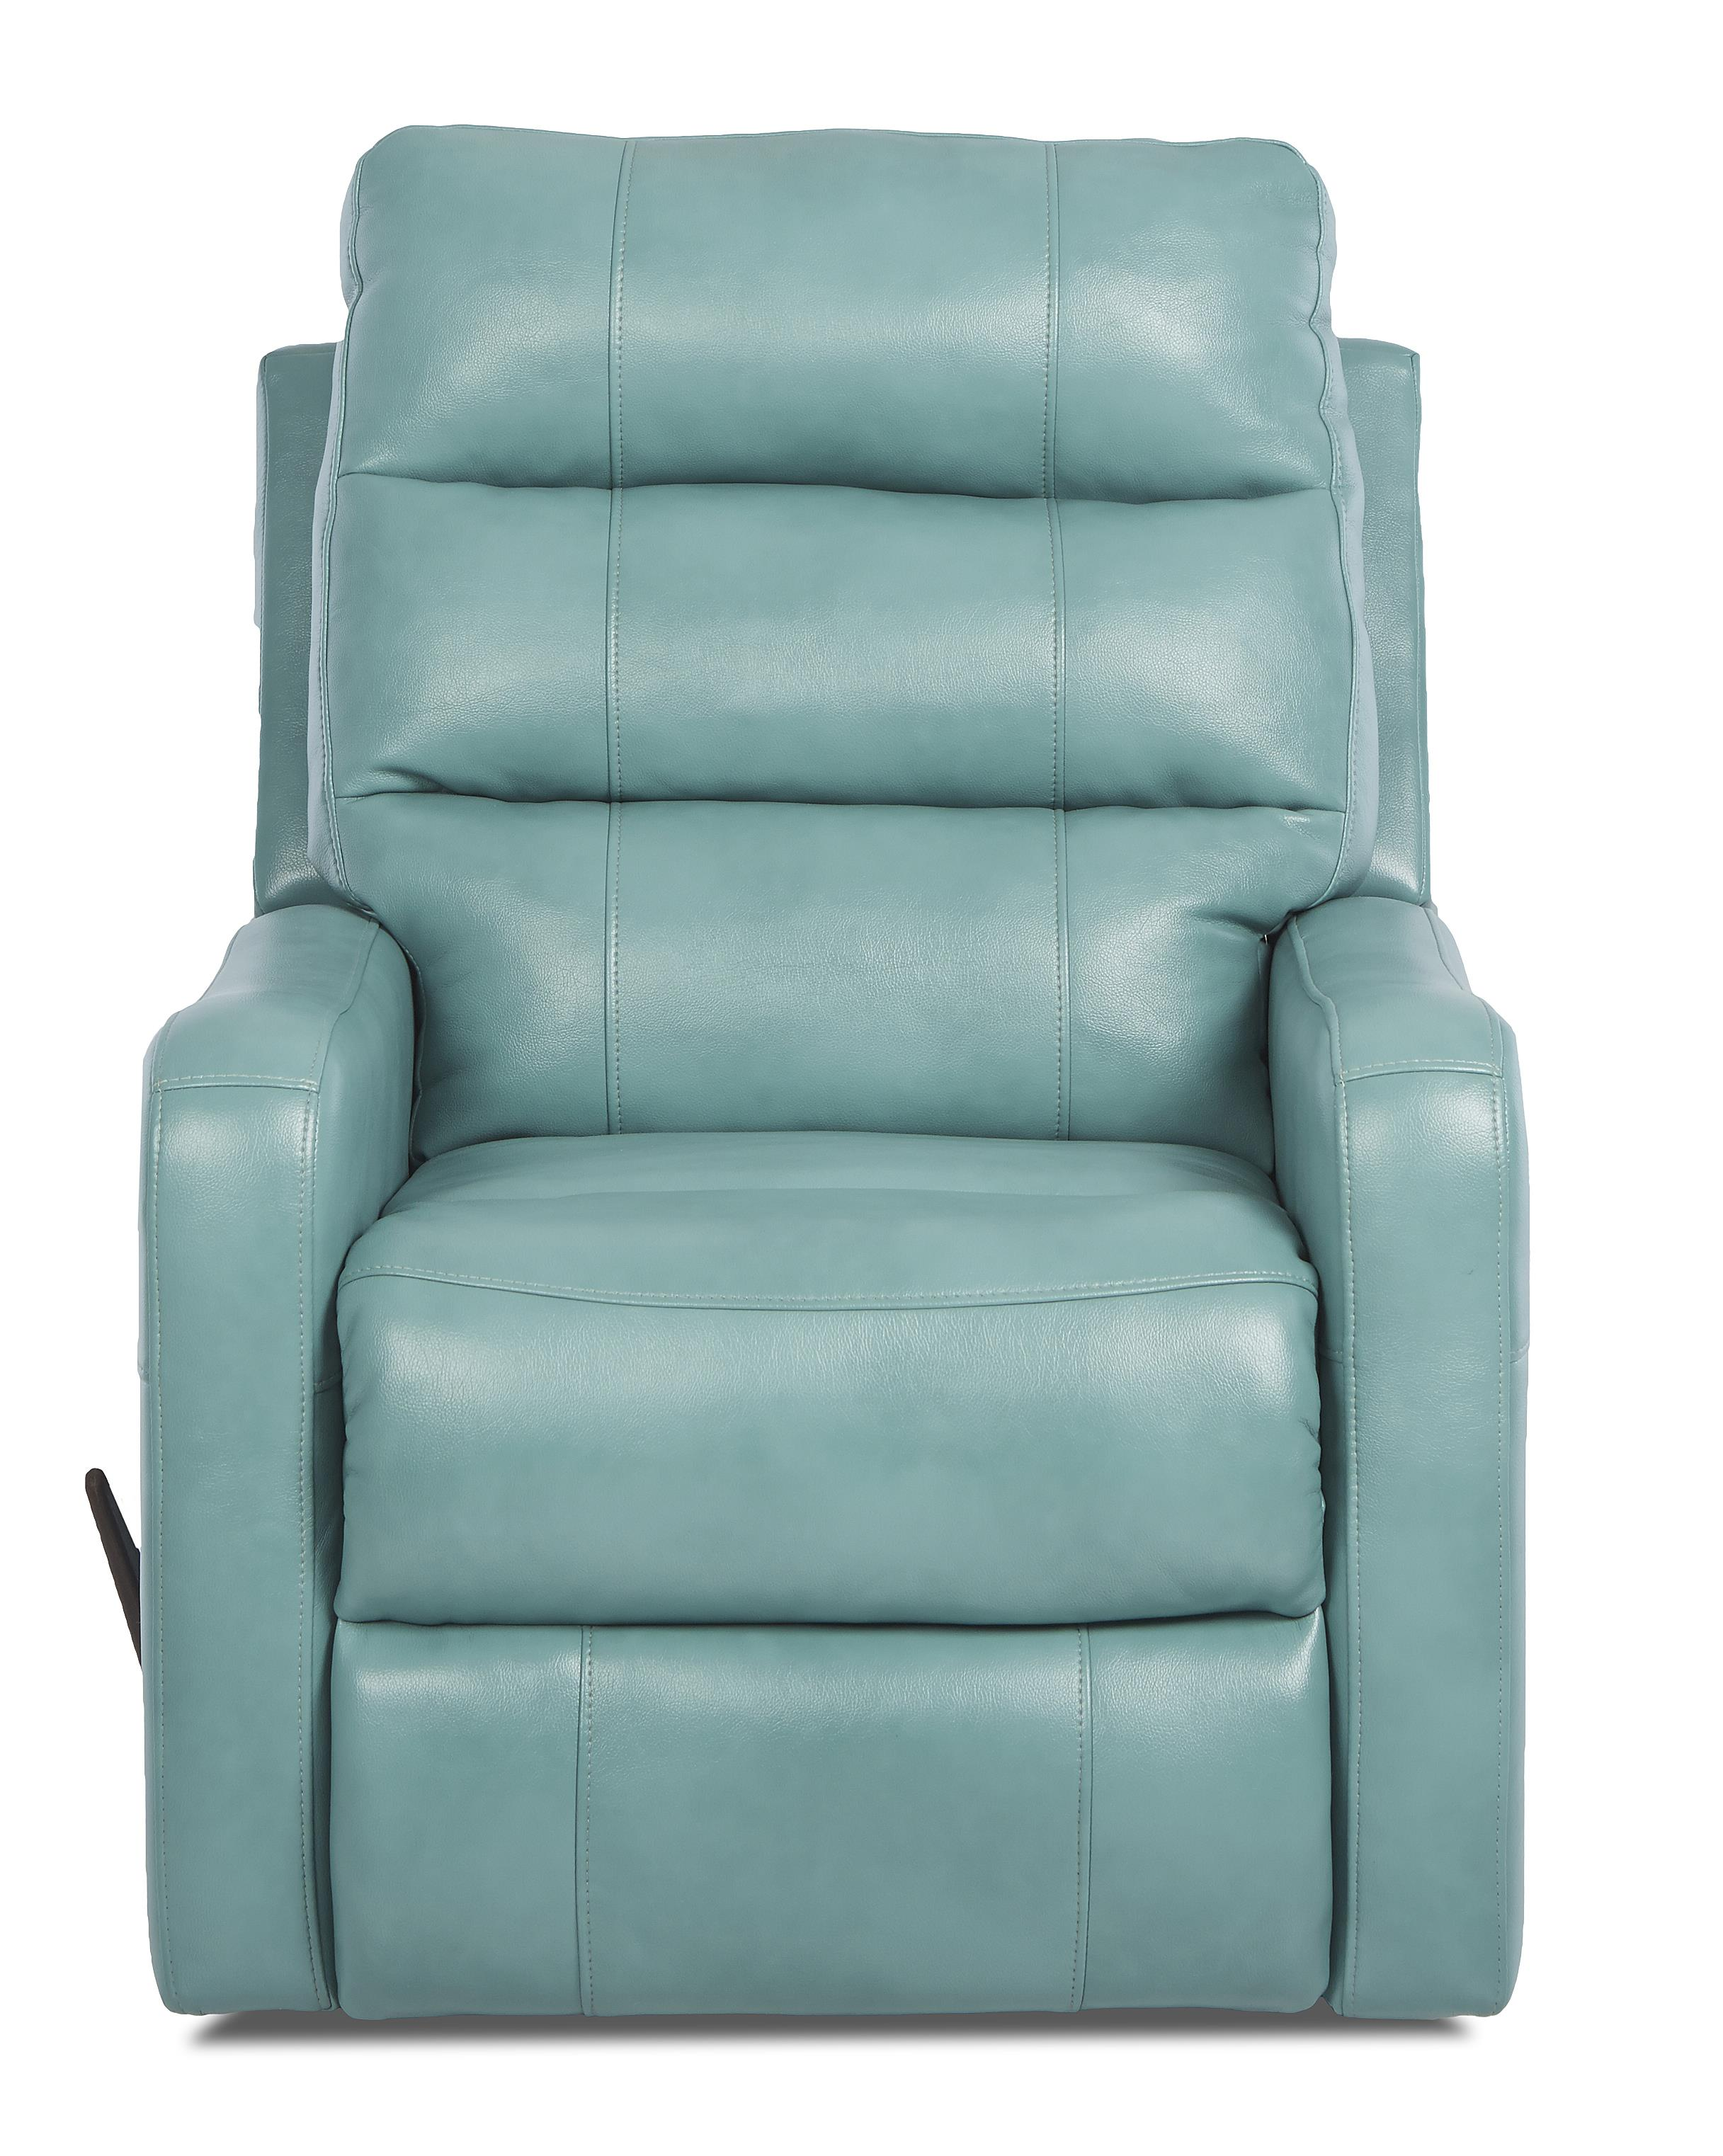 Beau Contemporary Reclining Chair